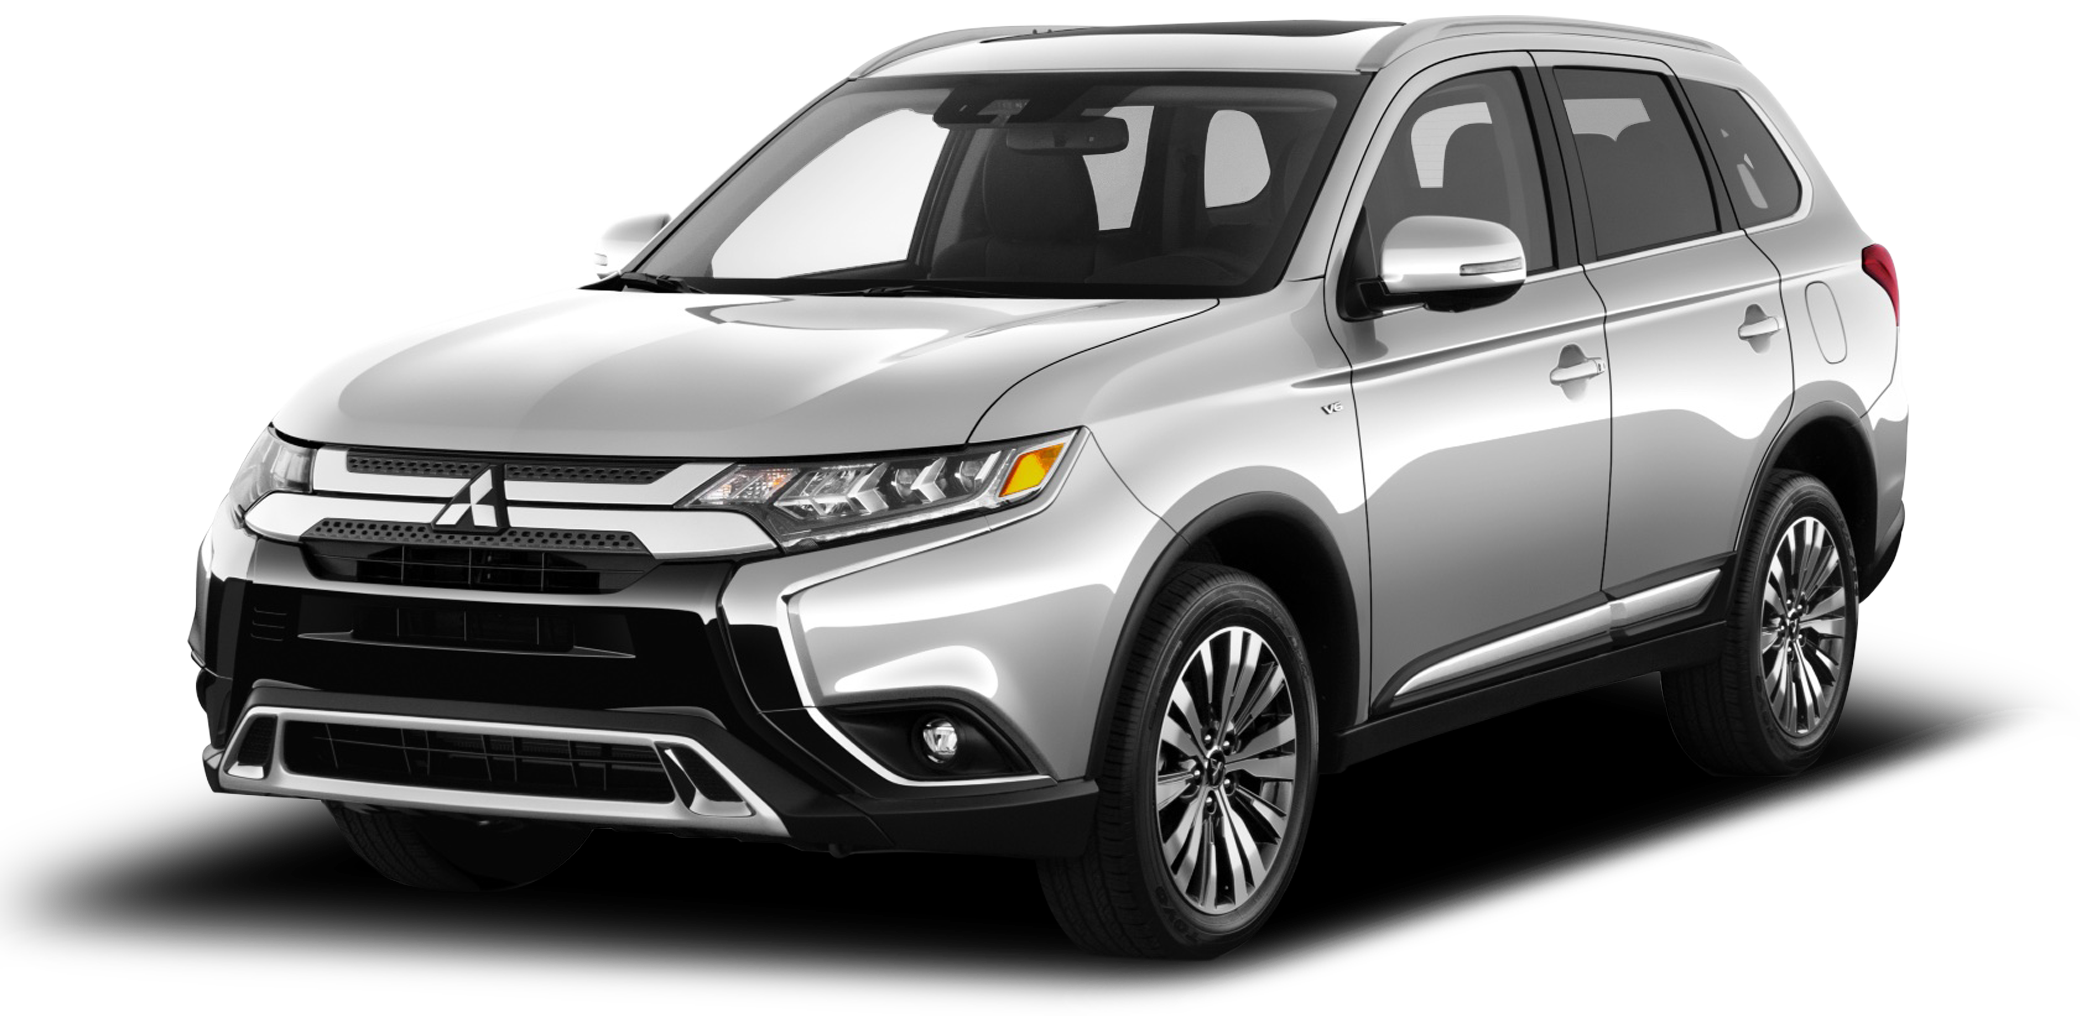 2019 Mitsubishi Outlander Incentives, Specials & Offers in